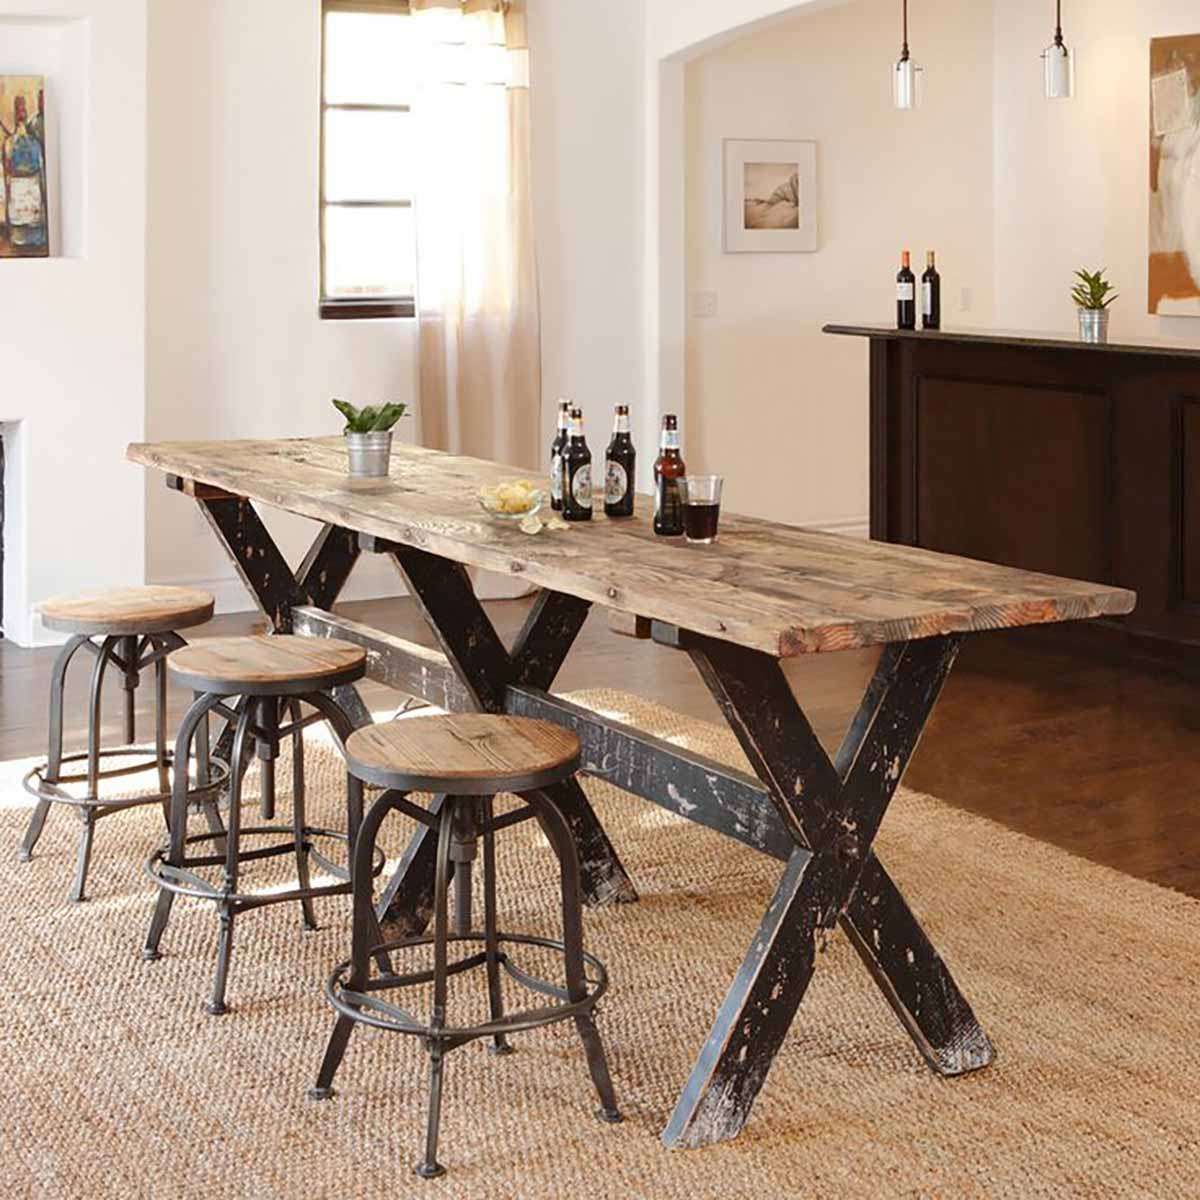 4 Long Skinny Dining Table Lovely Long Narrow Dining Table Amazing Furniture Tables Gallery Includ Mesas De Comedor Estrechas Mesas De Cocina Mesas De Comedor